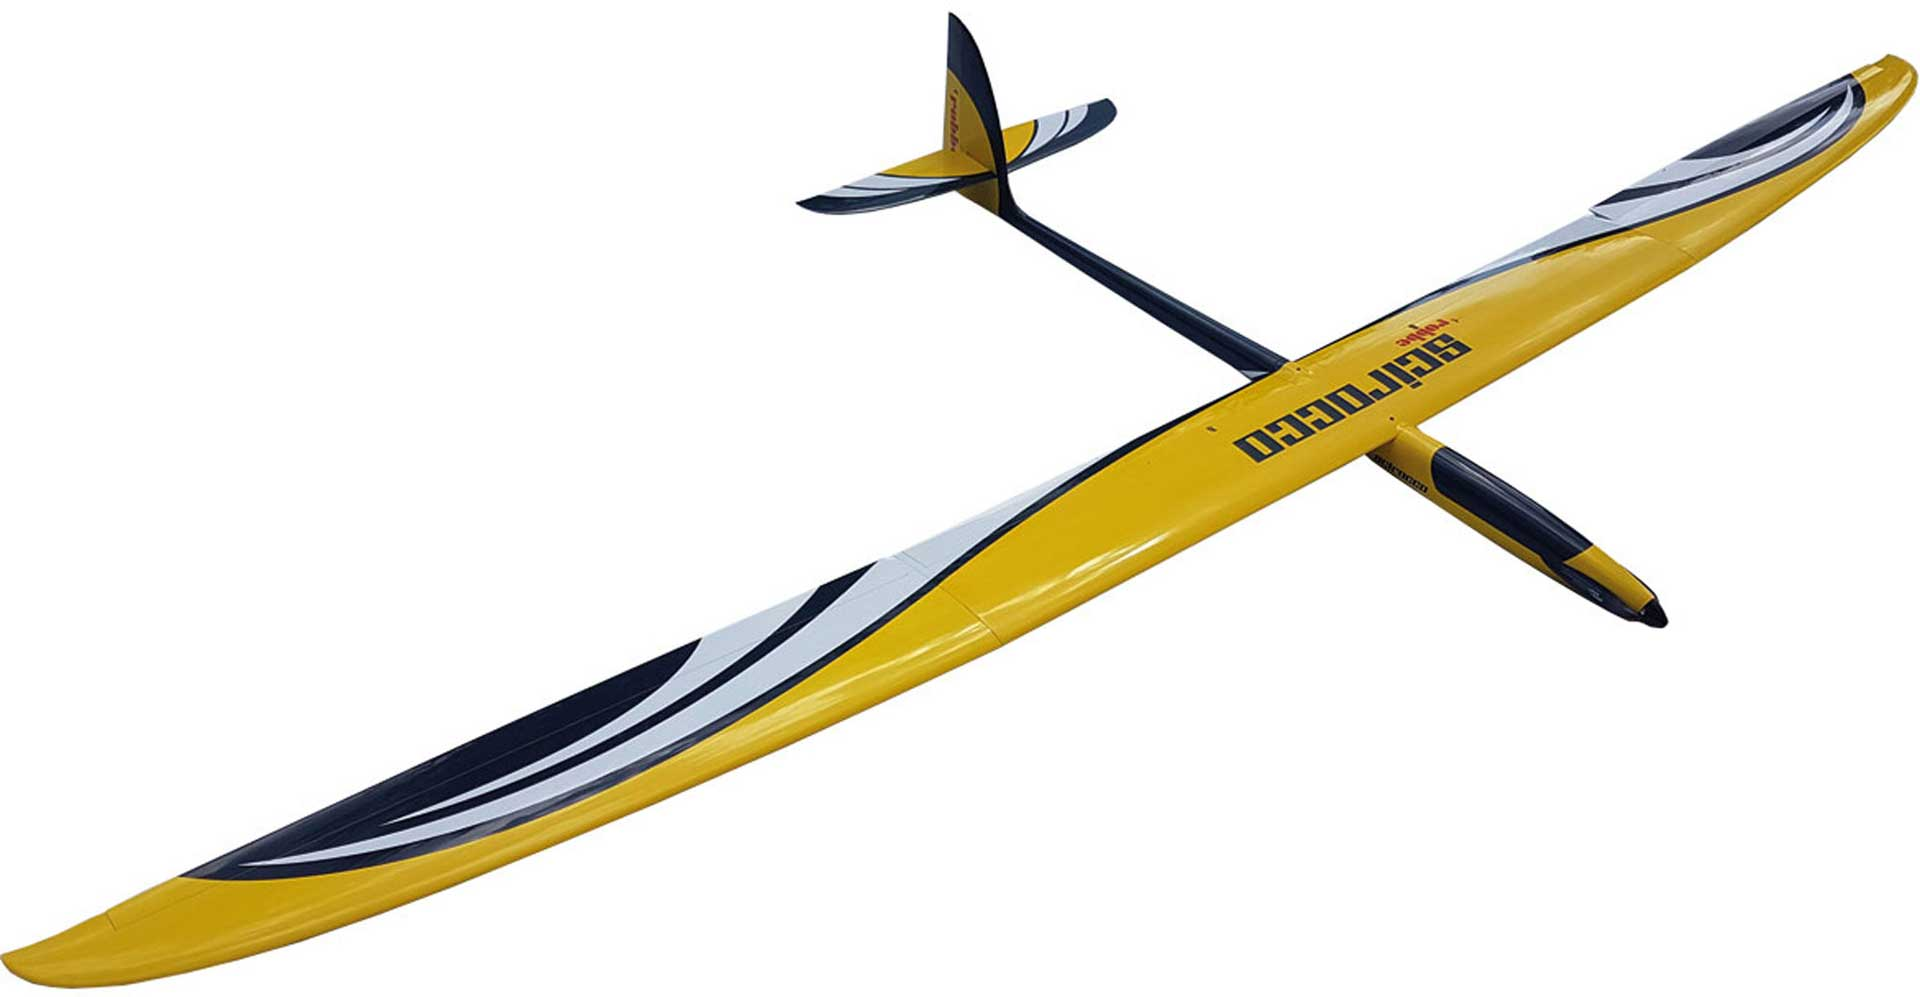 Robbe Modellsport SCIROCCO 4,0 M ARF FULL-GRP HIGH-PERFORM ANCE SAILPLANE